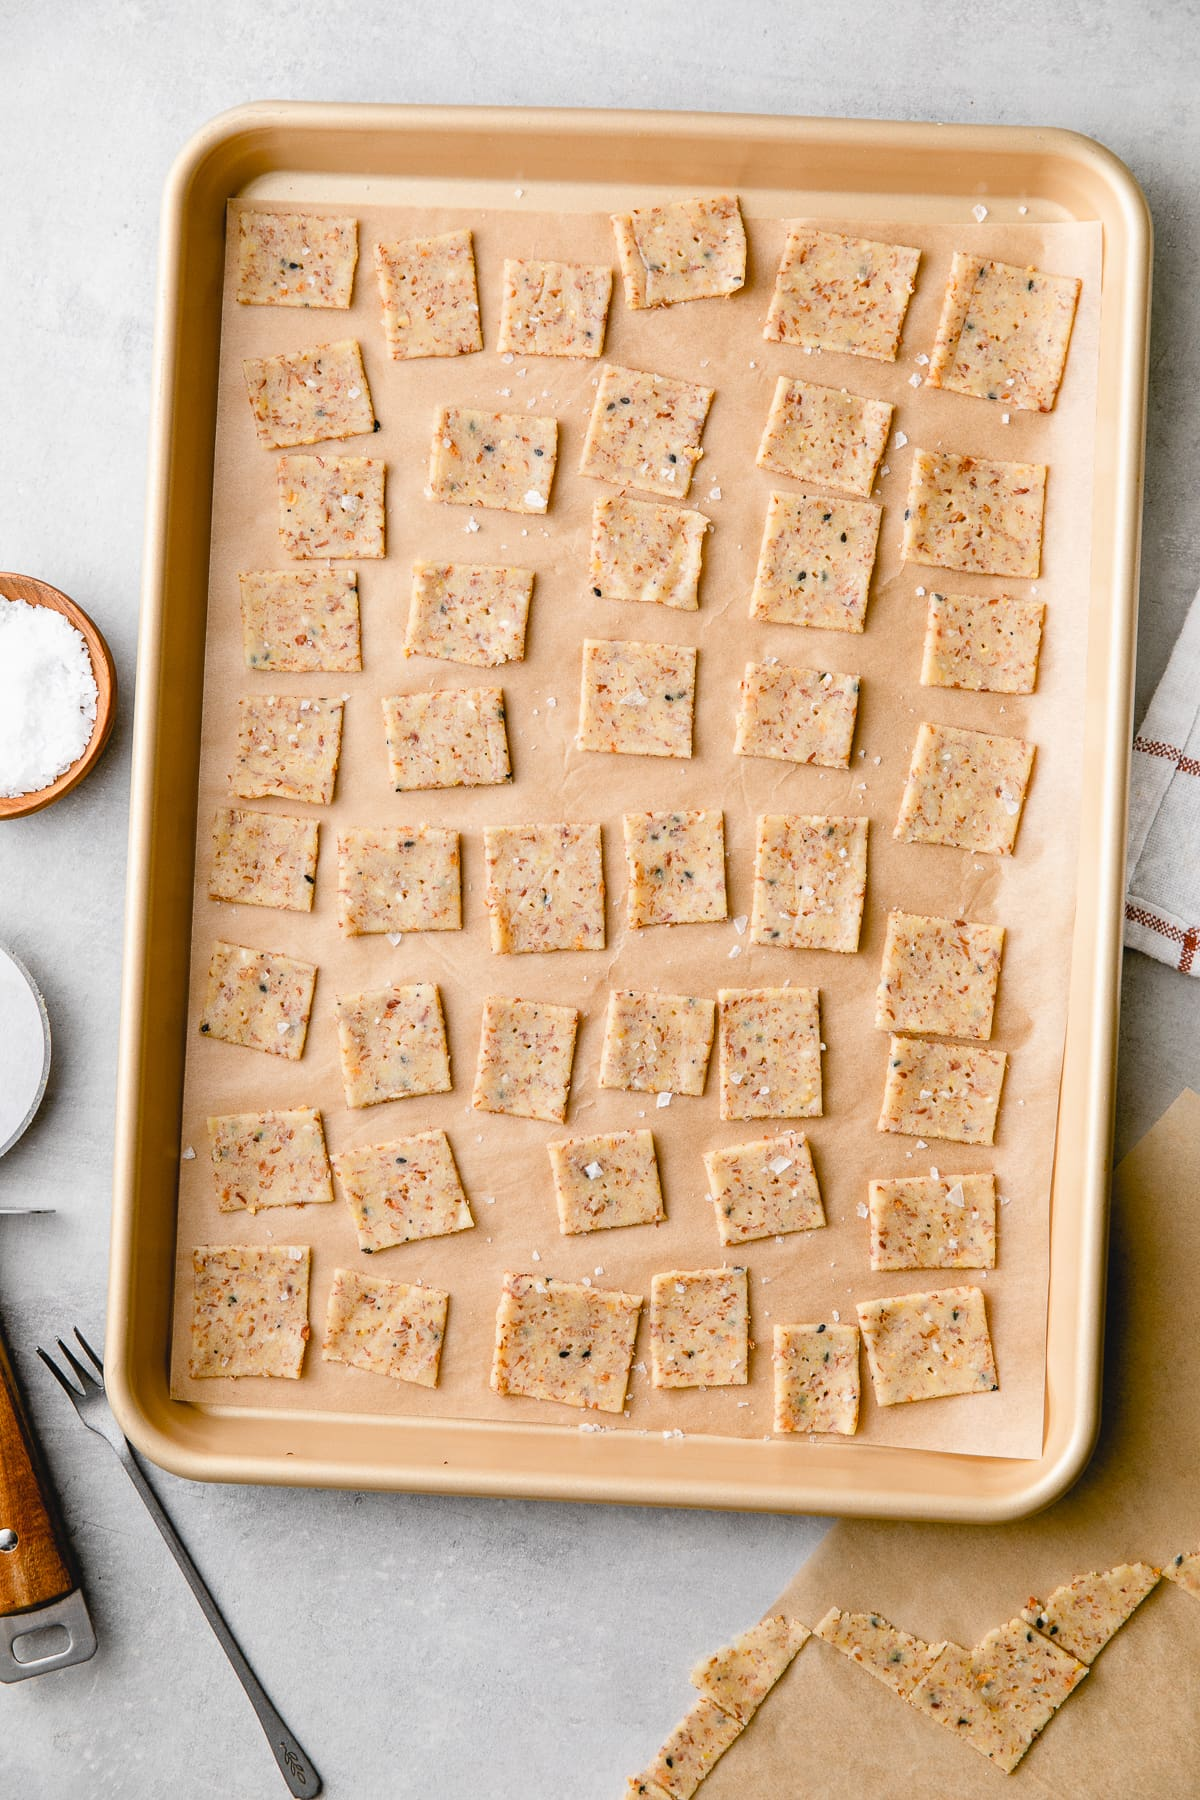 top down view of grain free almond flour crackers ready for the oven on a baking sheet.